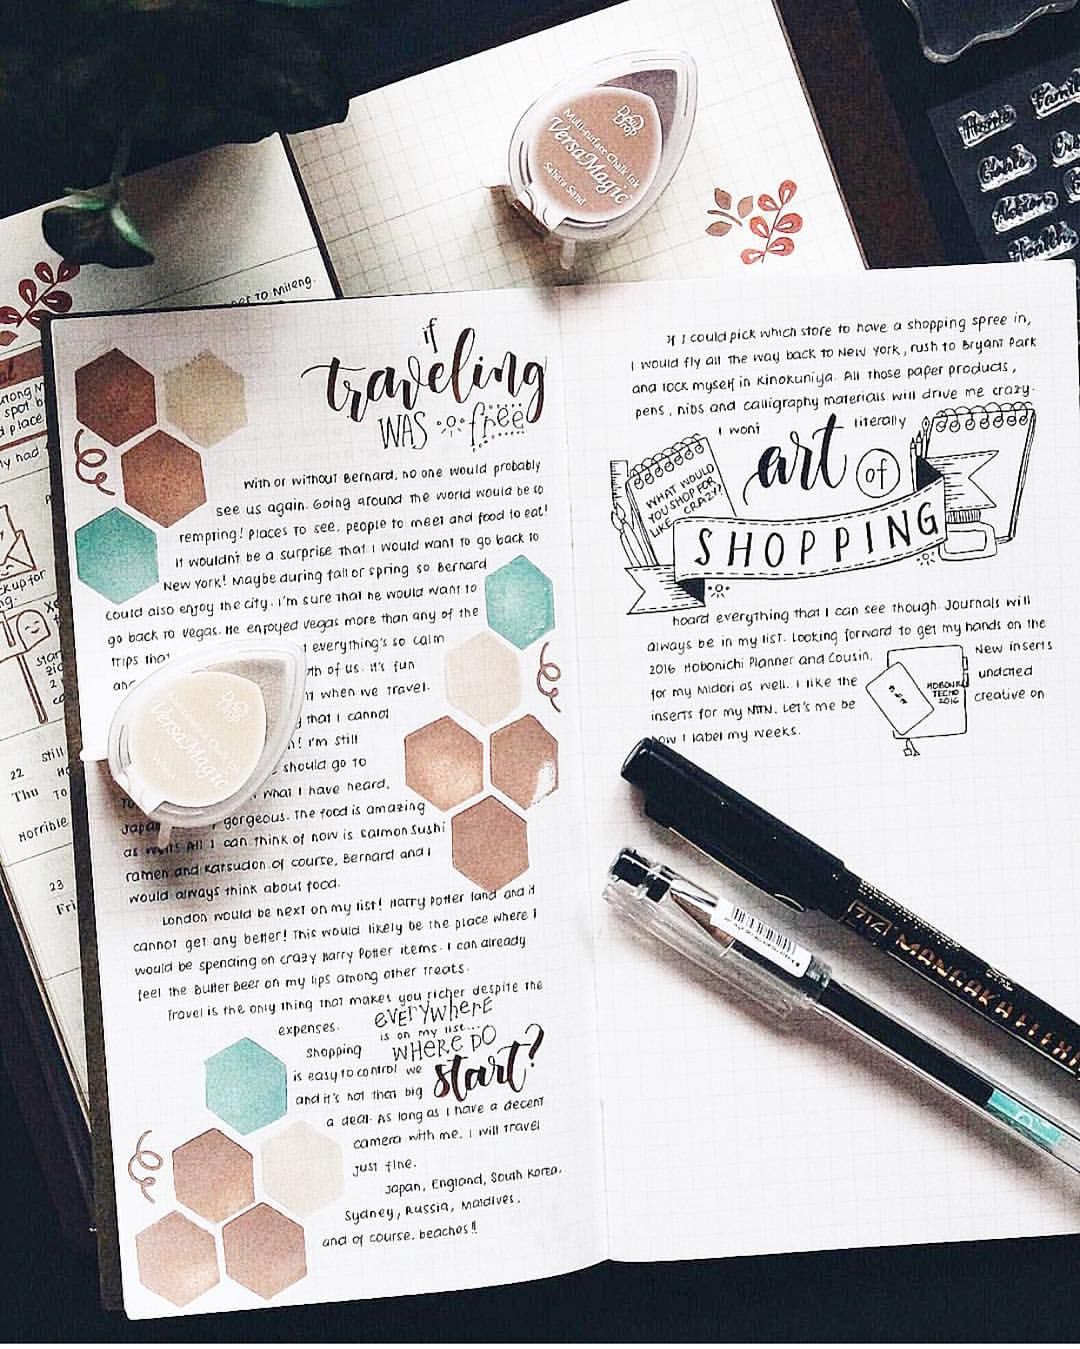 """Marryl on Instagram: """"Do you enjoy writing on your journal? Here's a beautiful #journalart inspiration from our Creative Team member @Aina Ipunt.kristina using some of our #MarrylStamps How beautiful is her calligraphy? If you'd like to try doing art journals using our stamps, please head on over to our website shop www.marrylcrafts.com/shop. We have a few stocks left. Happy stamping! What's on your journal?"""""""